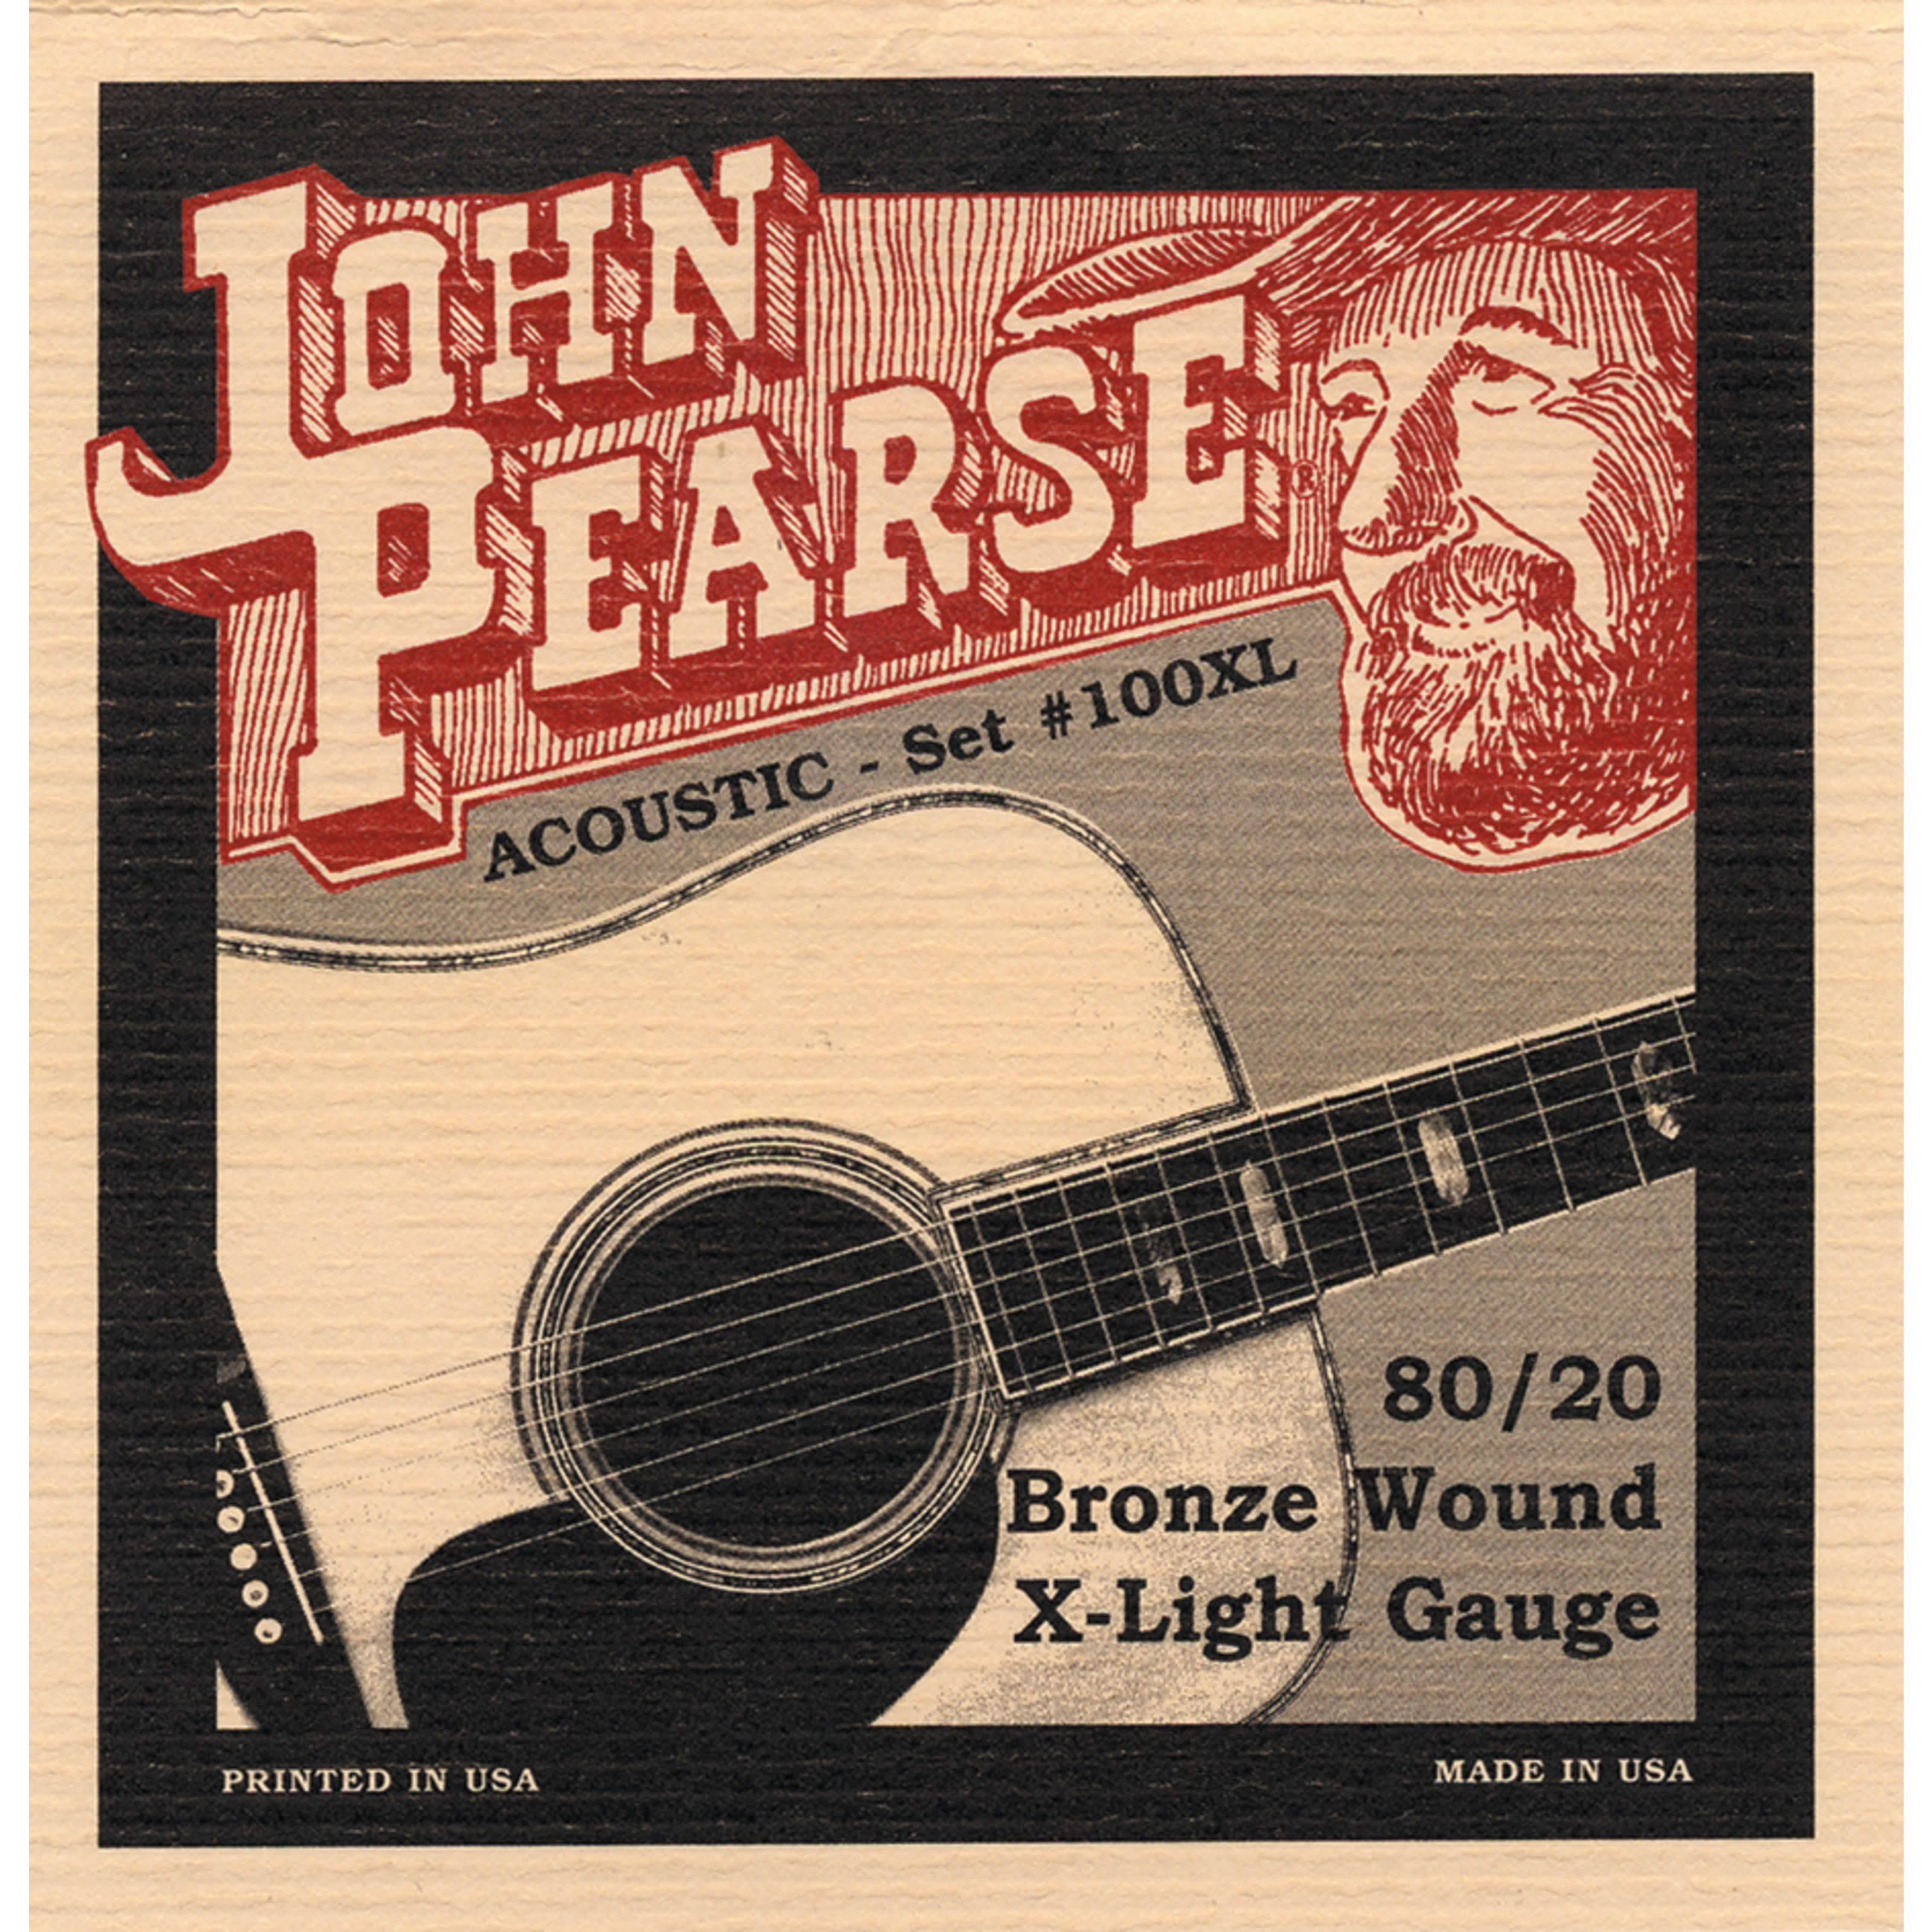 John Pearse 100XL 80/20 Acoustic Guitar Strings - Bronze Wood, Extra Light Gauge